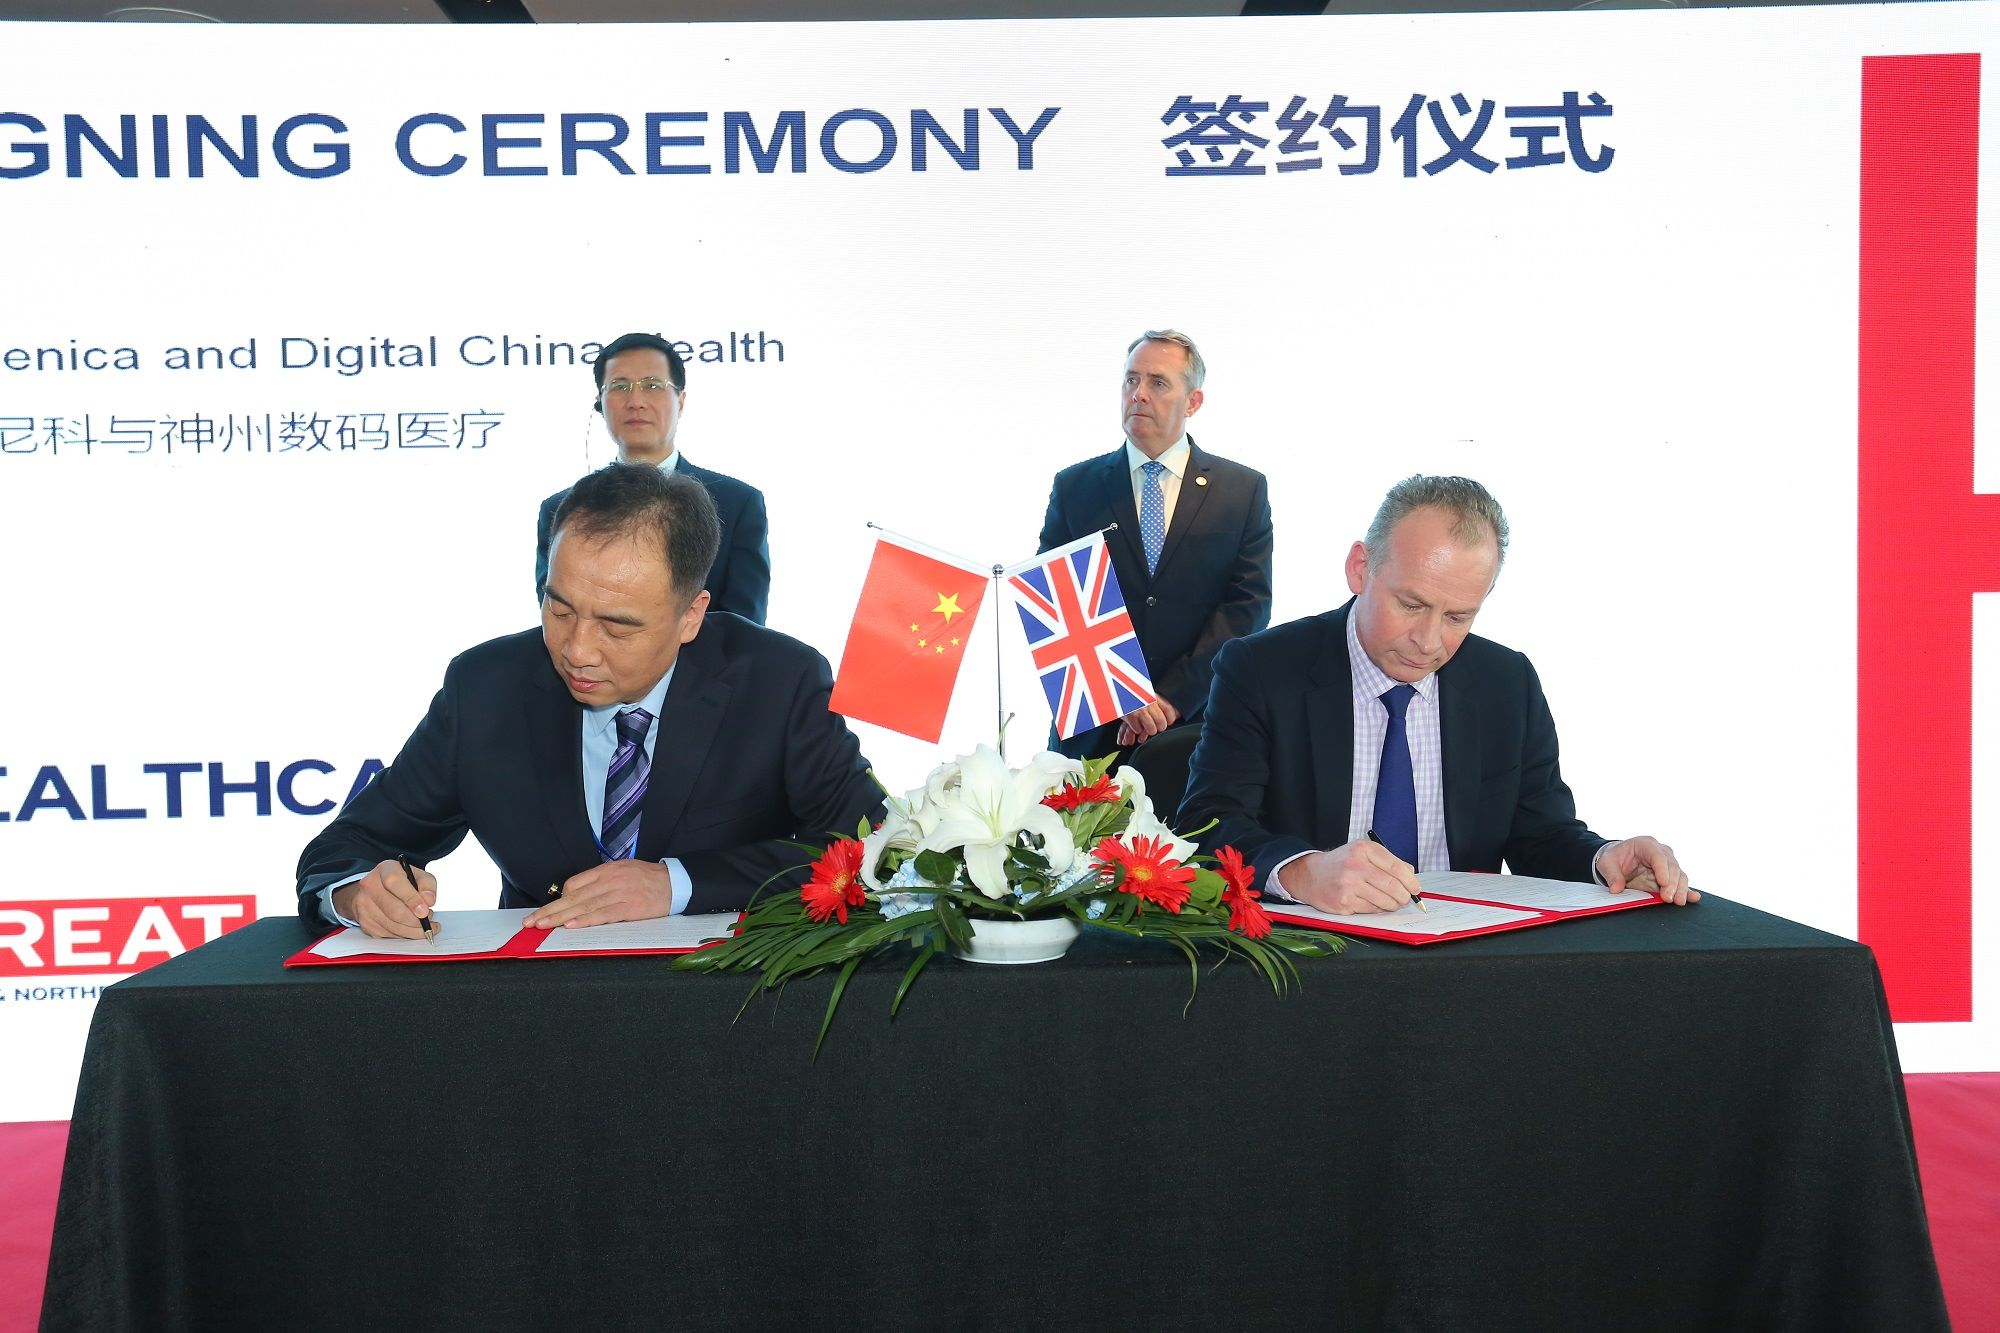 Congenica and Digital China Health signed a MOU on genomic data analytics research and development to implement a medical big data strategy in China